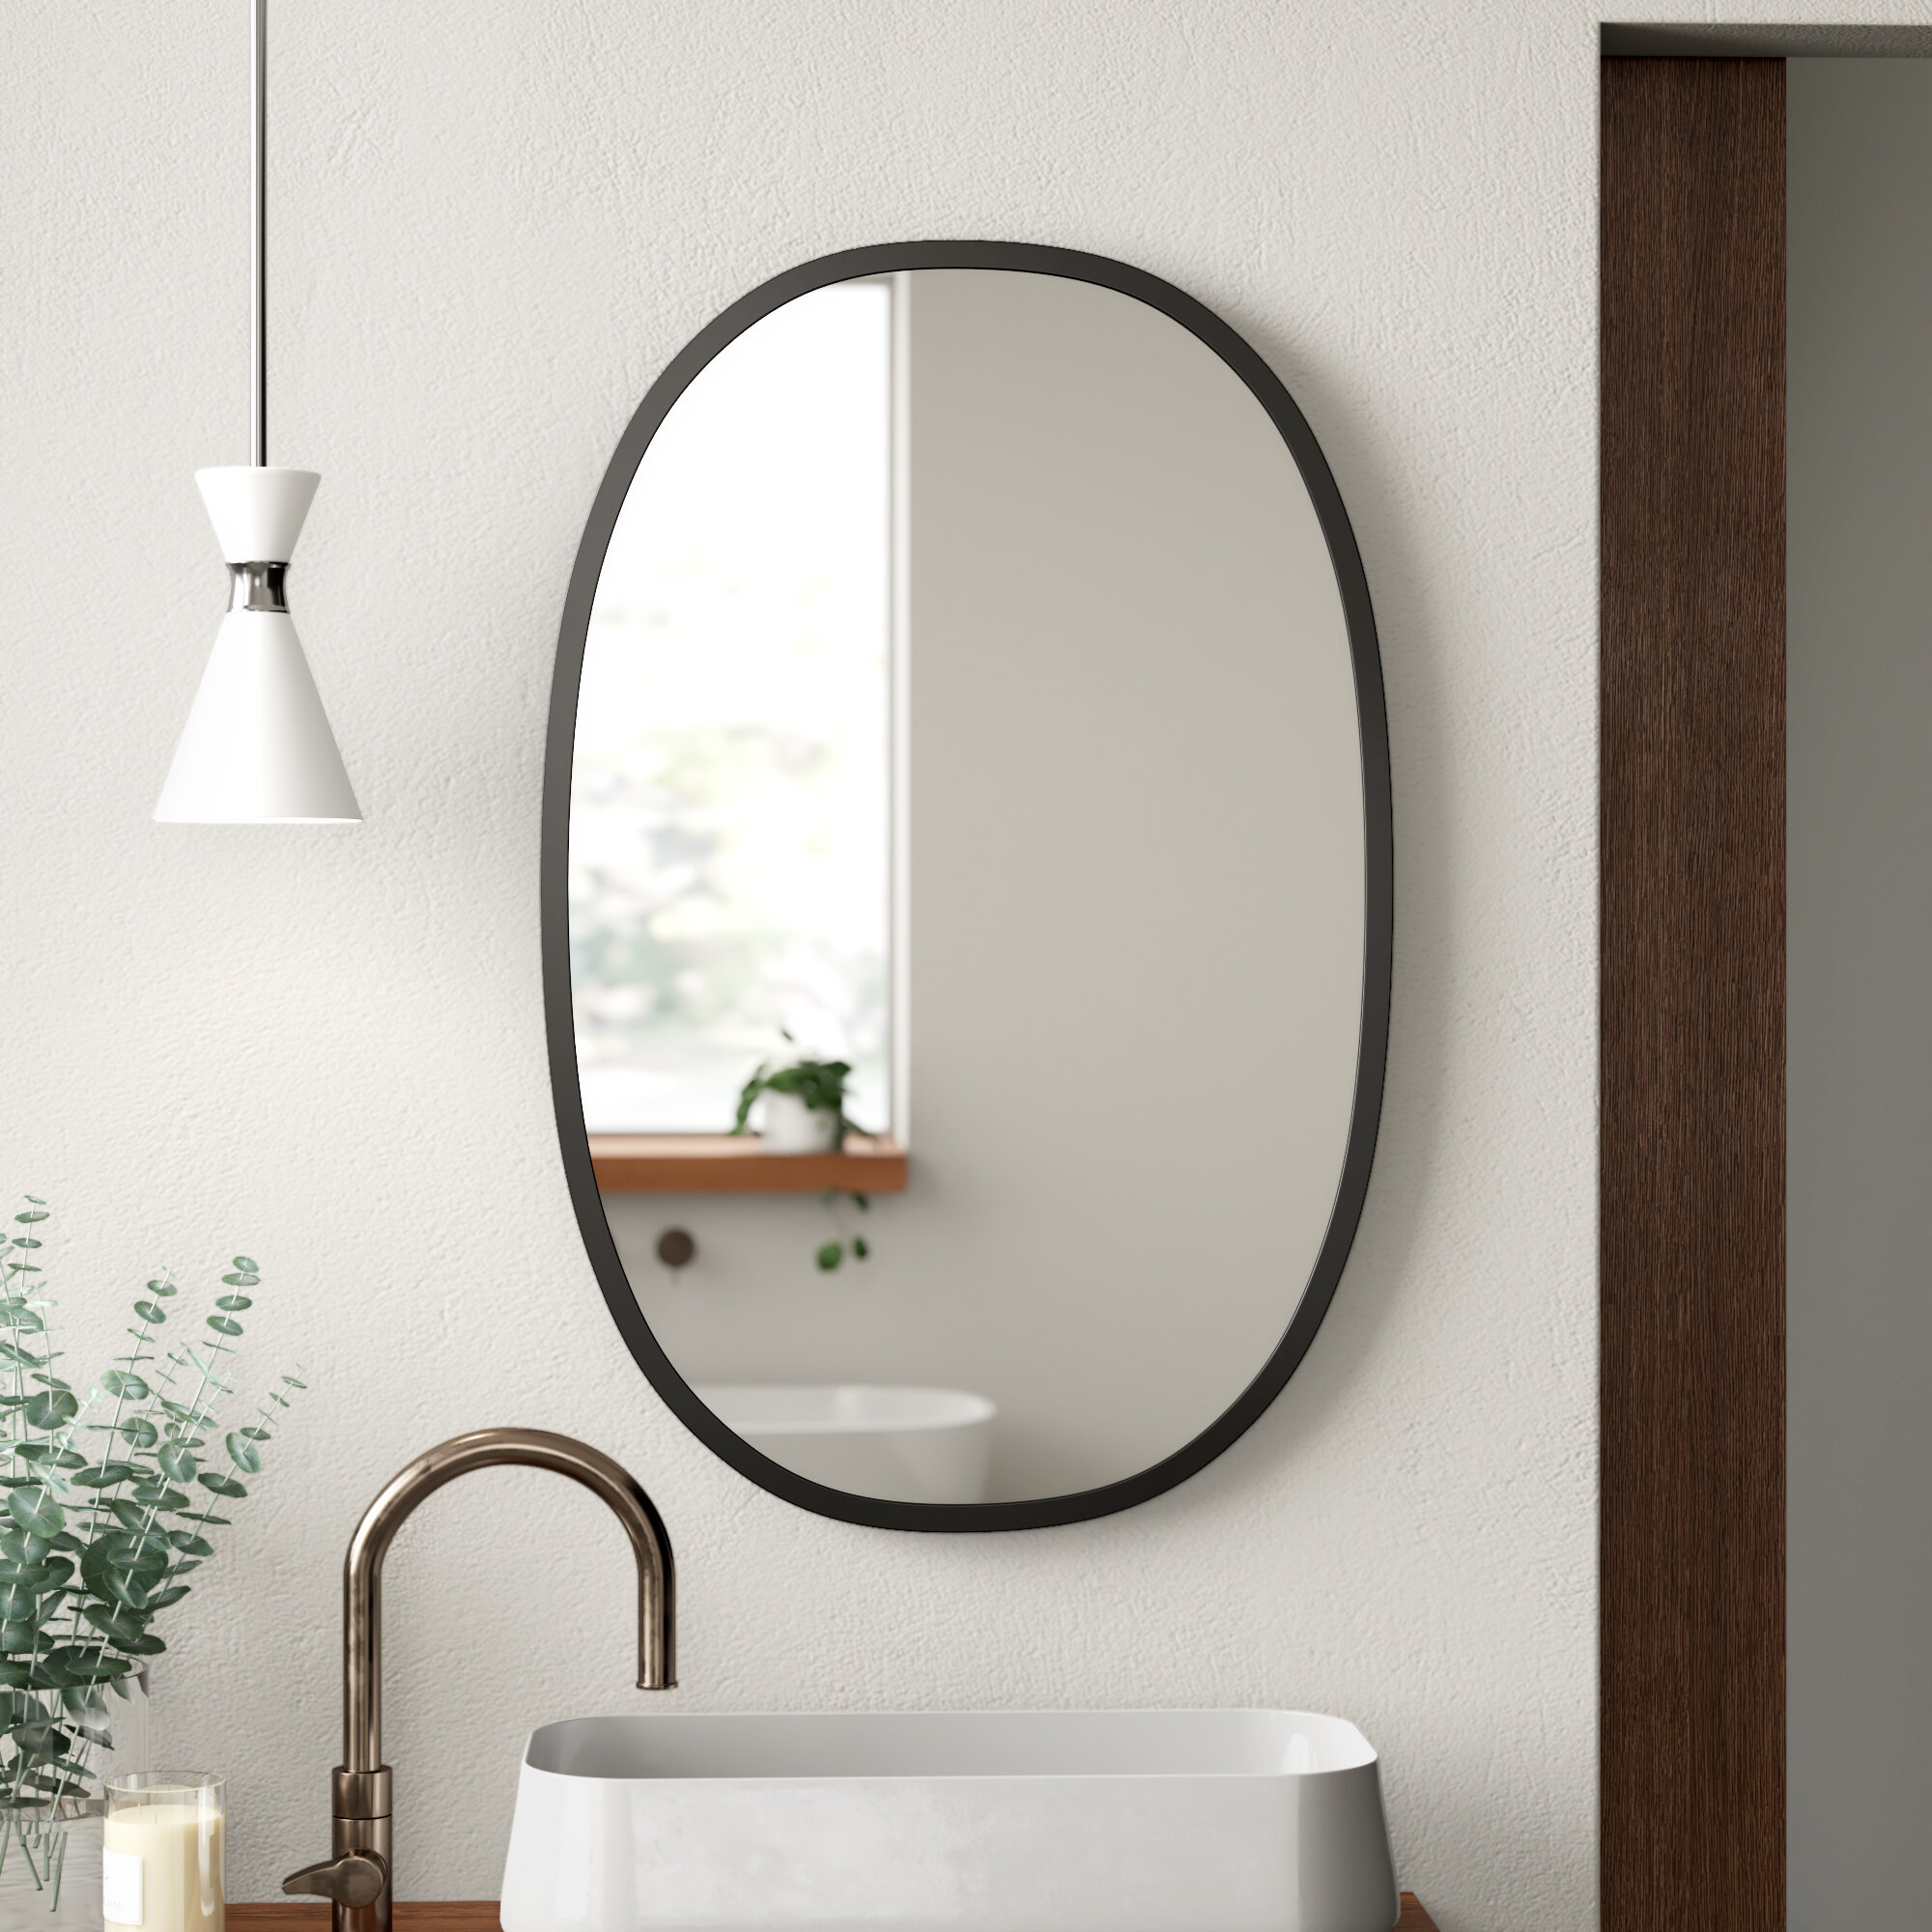 Hub Modern & Contemporary Accent Mirror Within Hub Modern And Contemporary Accent Mirrors (View 3 of 30)